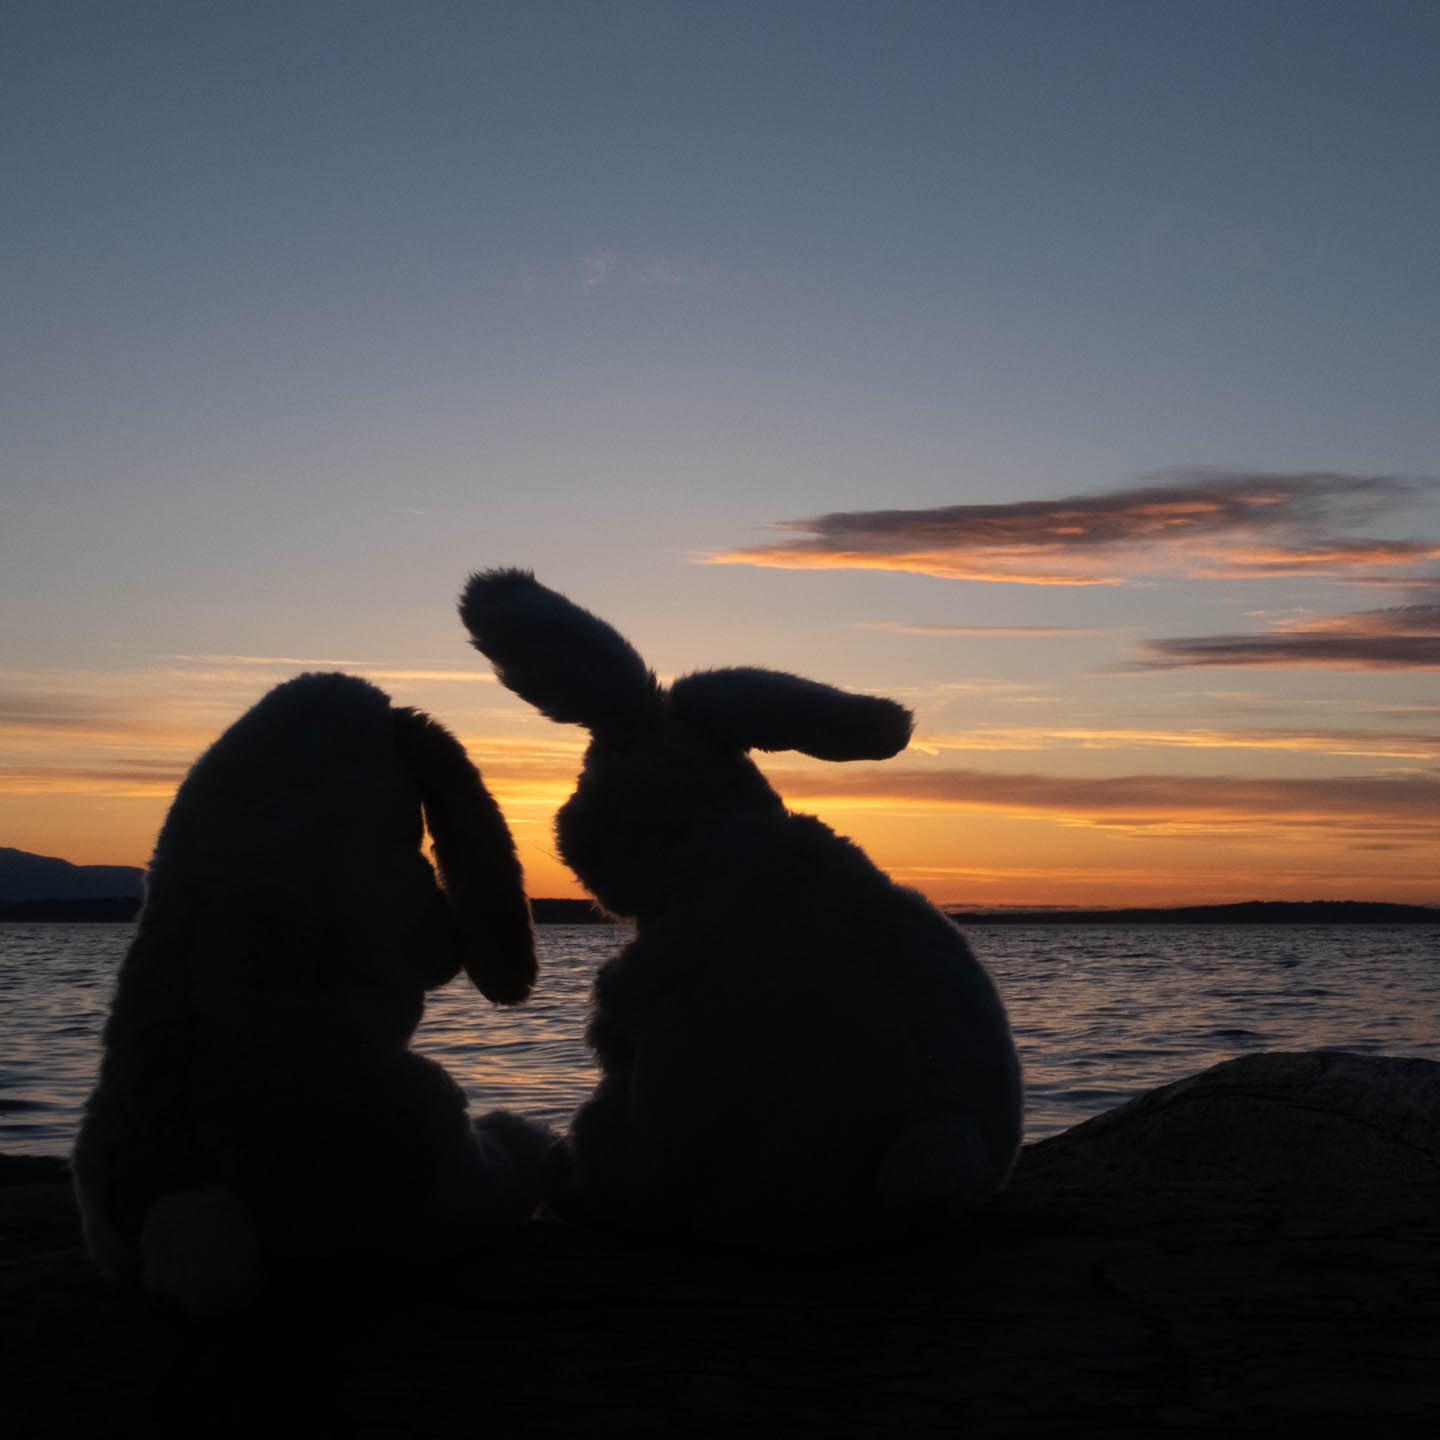 Pair of stuffed animal bunnies silhouetted against an ocean sunset